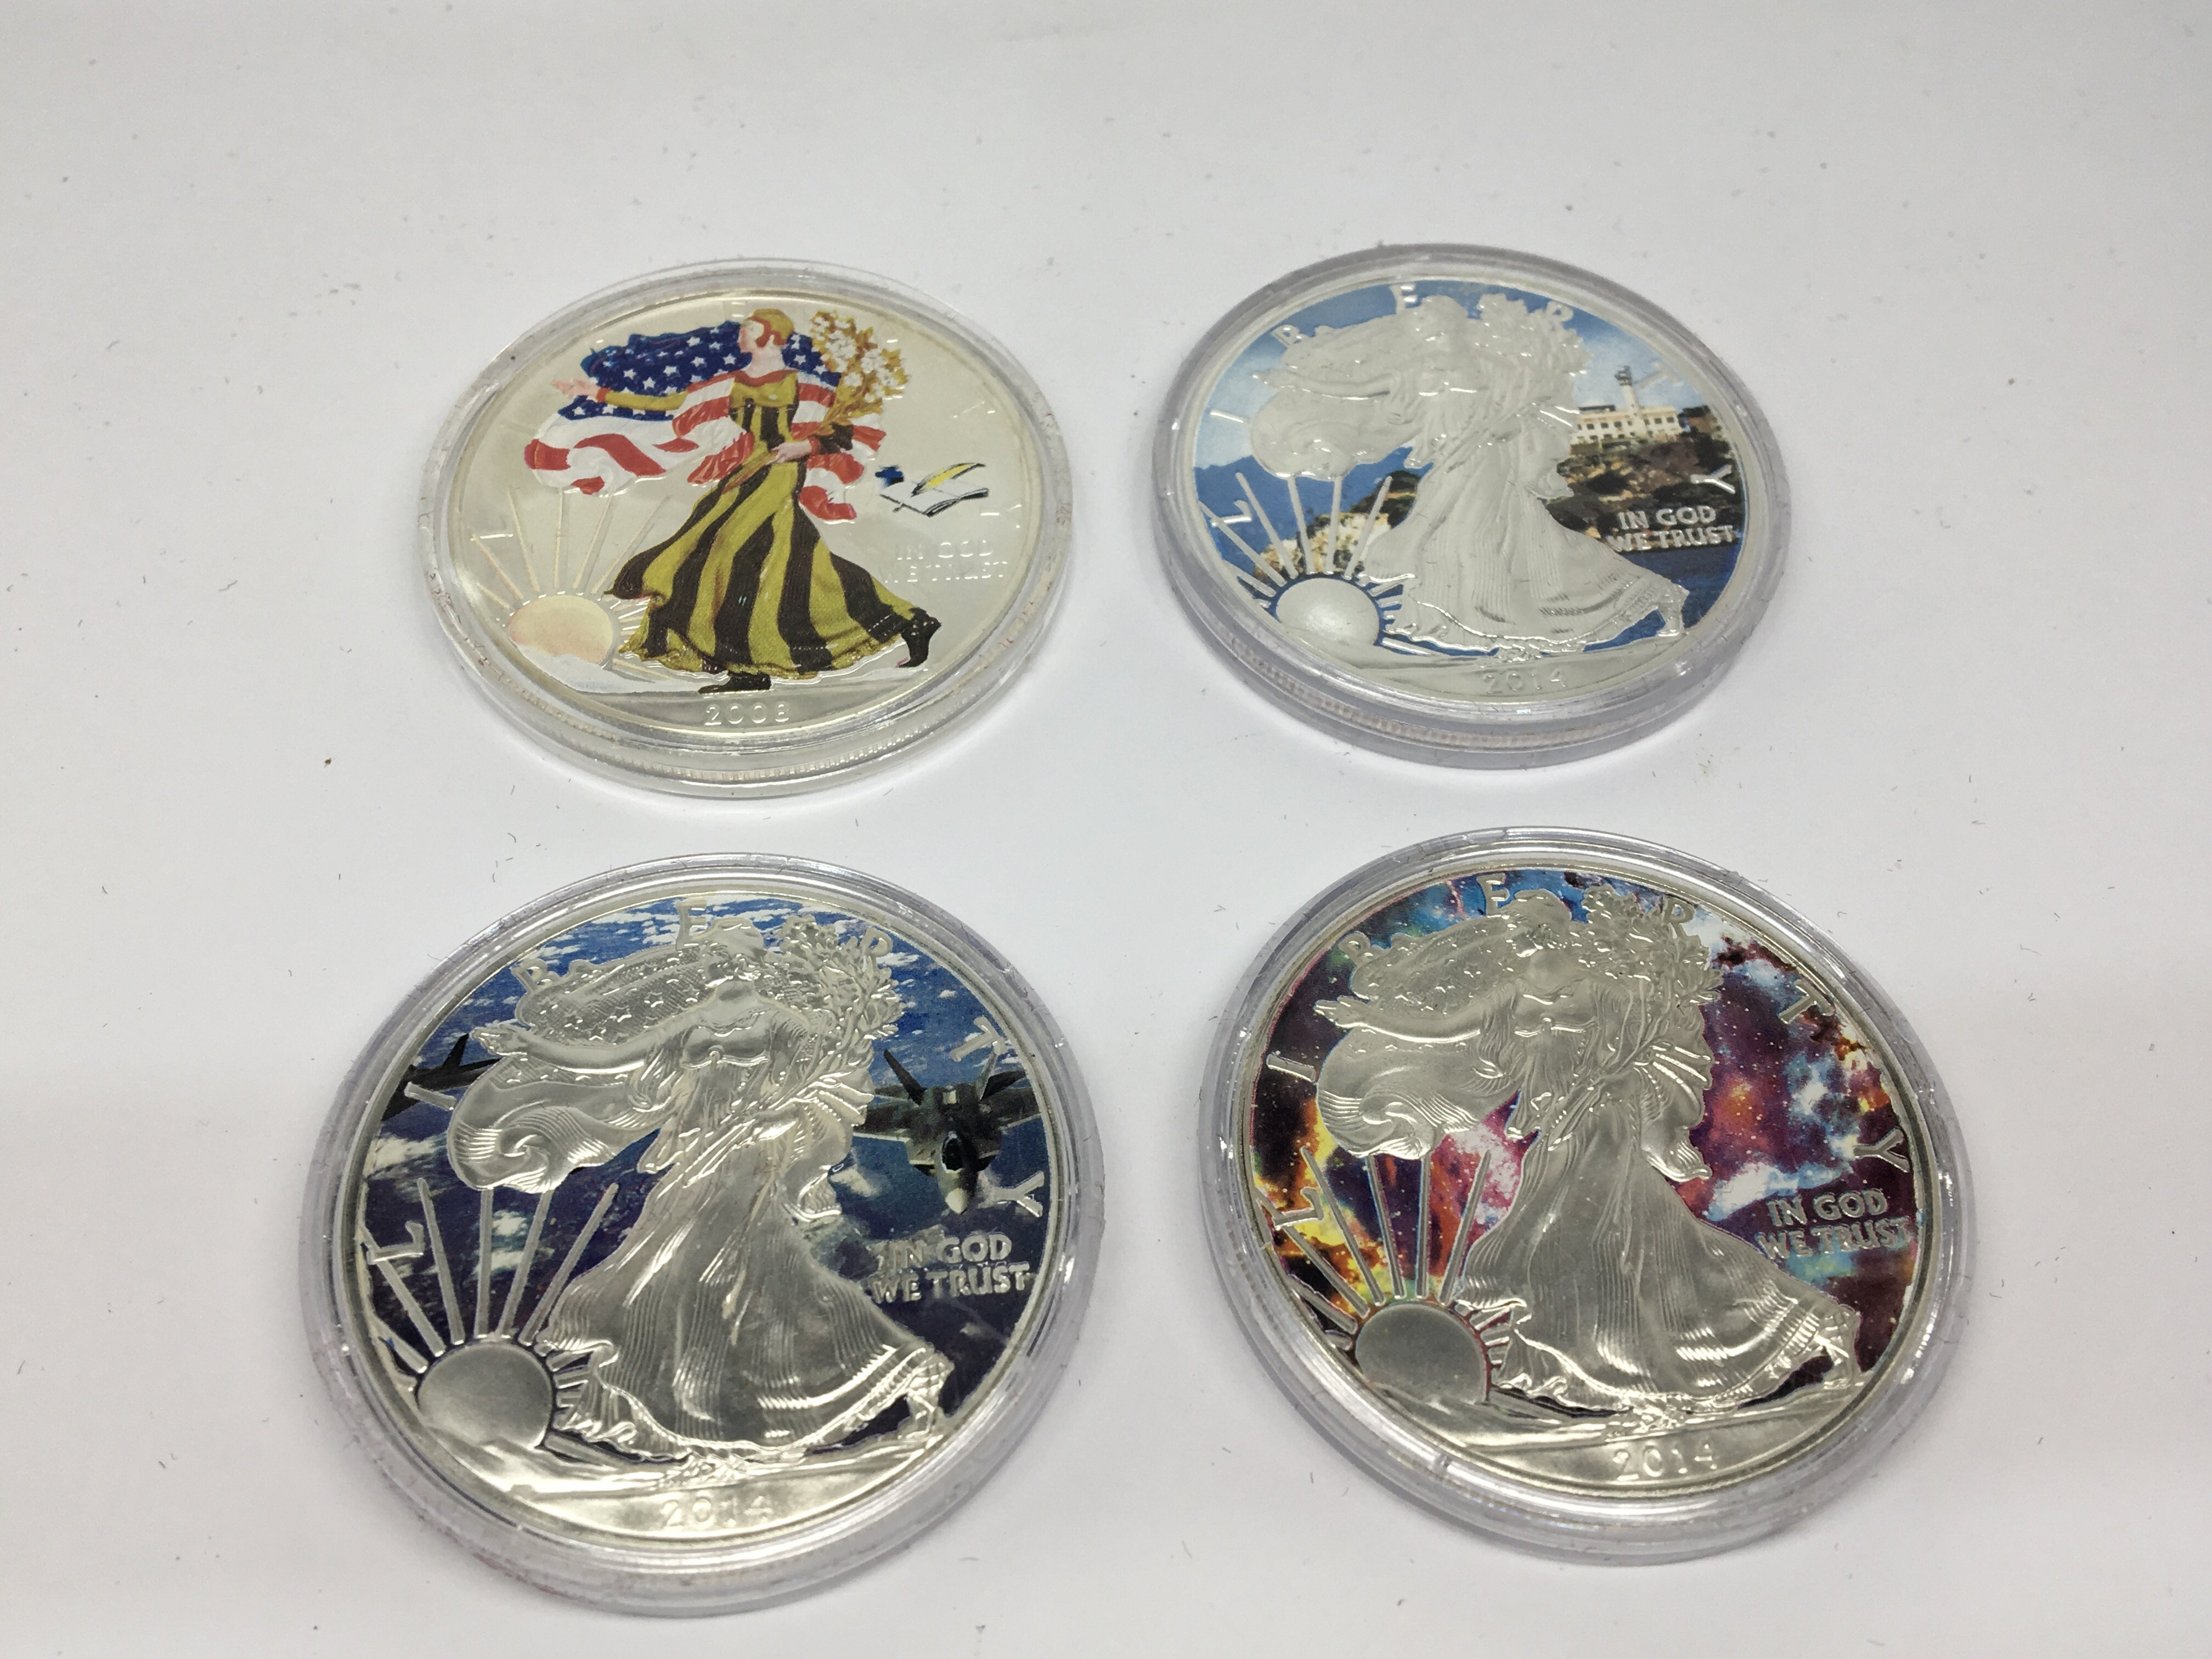 Lot 122 - A Collection of Four American Silver Dollars ename